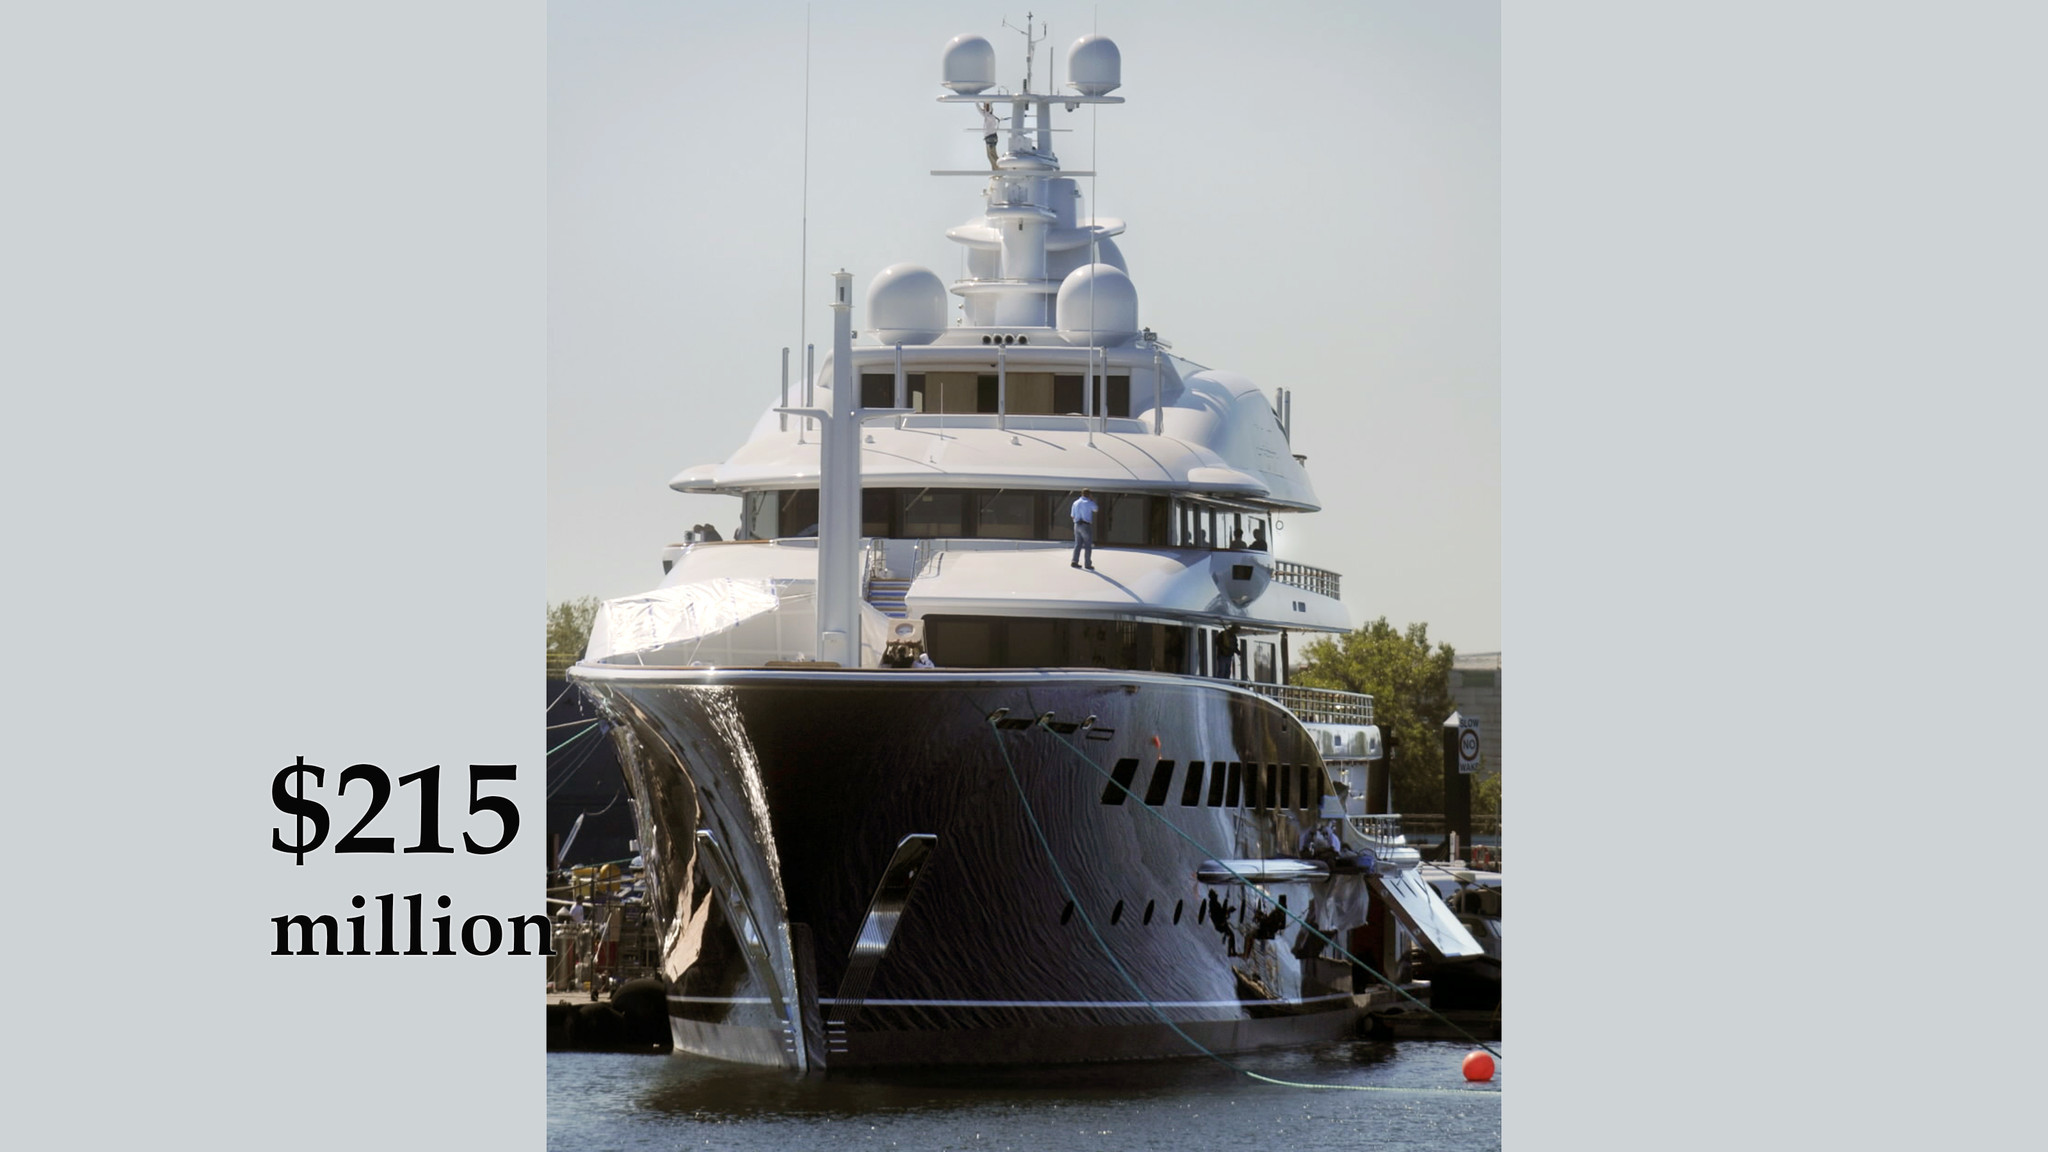 Photo of Cakewalk V, the largest yacht built in the US since